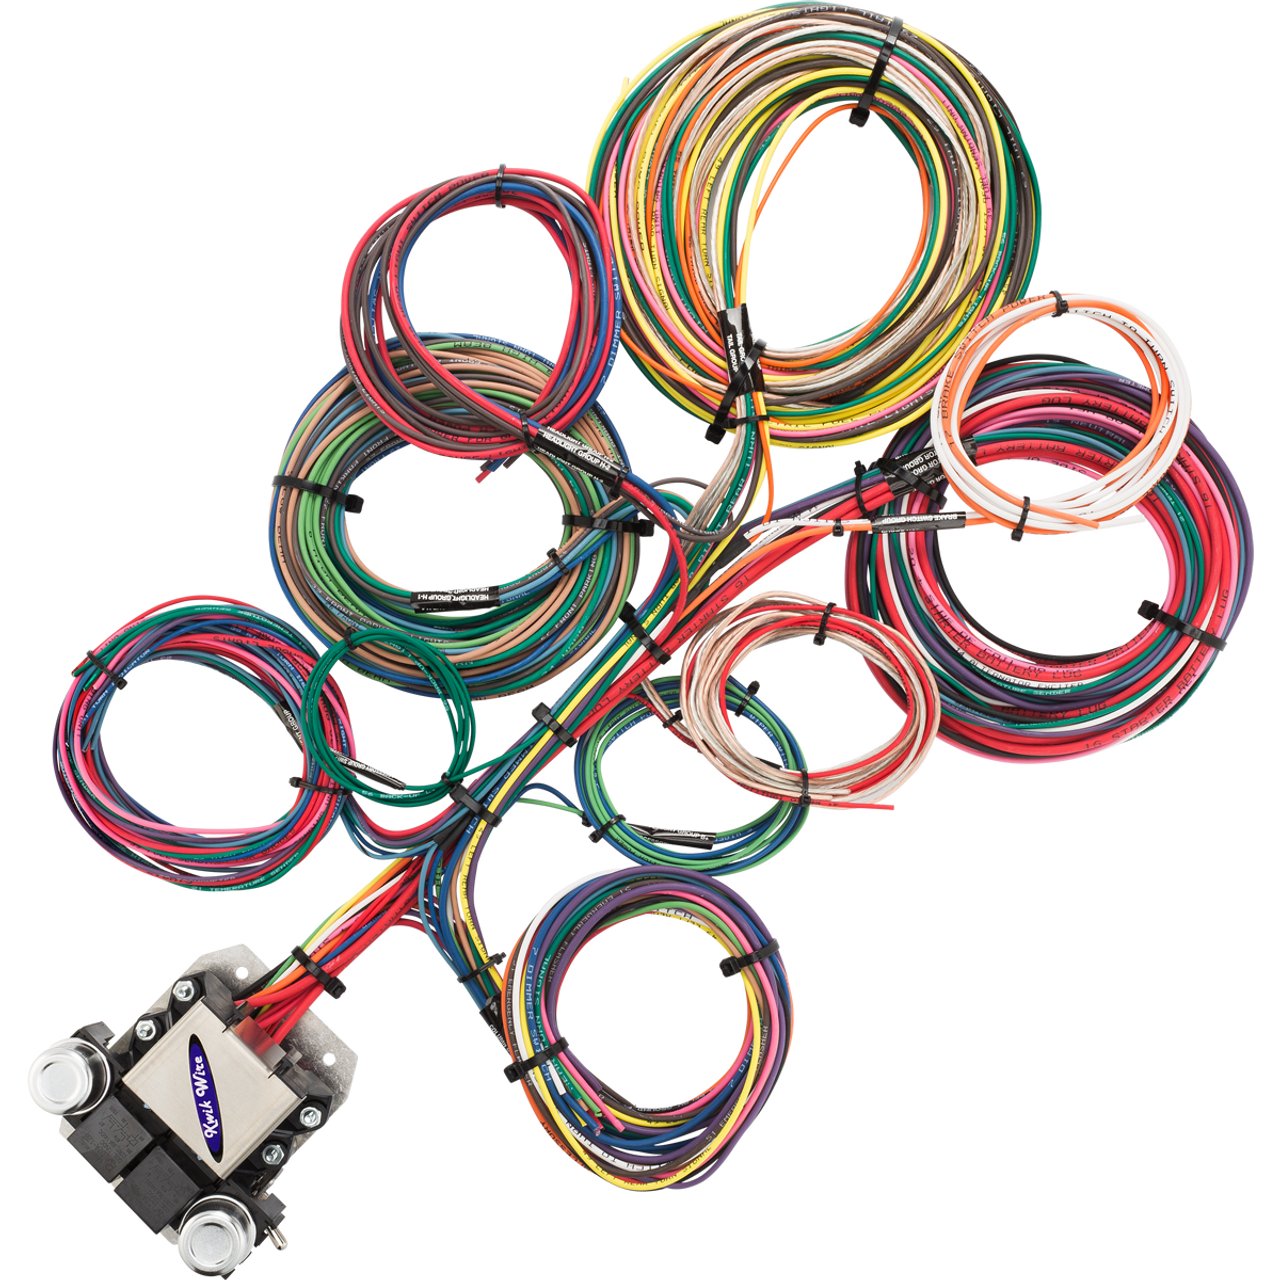 8 Circuit Ford Wire Harness - KwikWire.com | Electrify Your Ride on kawasaki wire harness, universal wire harness, yamaha wire harness, lsx wire harness, kohler wire harness, silver wire harness, murray wire harness, bosch wire harness, pioneer wire harness, sony wire harness, dakota wire harness, johnson wire harness, honda wire harness, caterpillar wire harness, mercury wire harness, peterson wire harness,